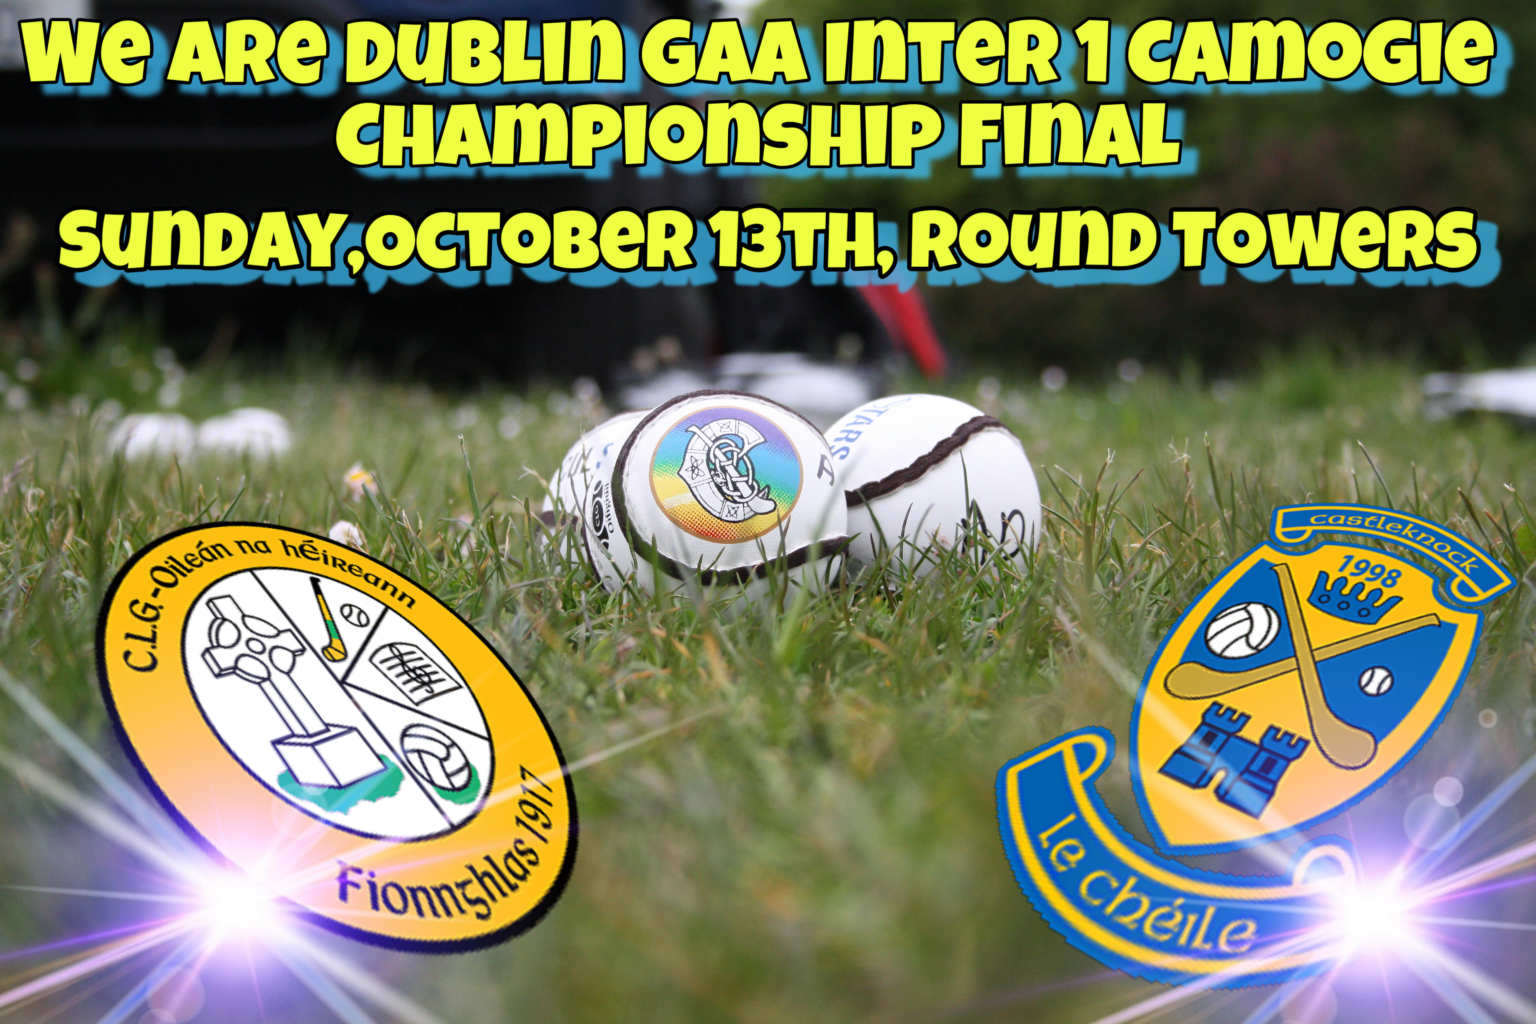 Promotional poster for the We Are Dublin GAA Inter 1 Camogie Championship Final between Erins Isle and Castleknock